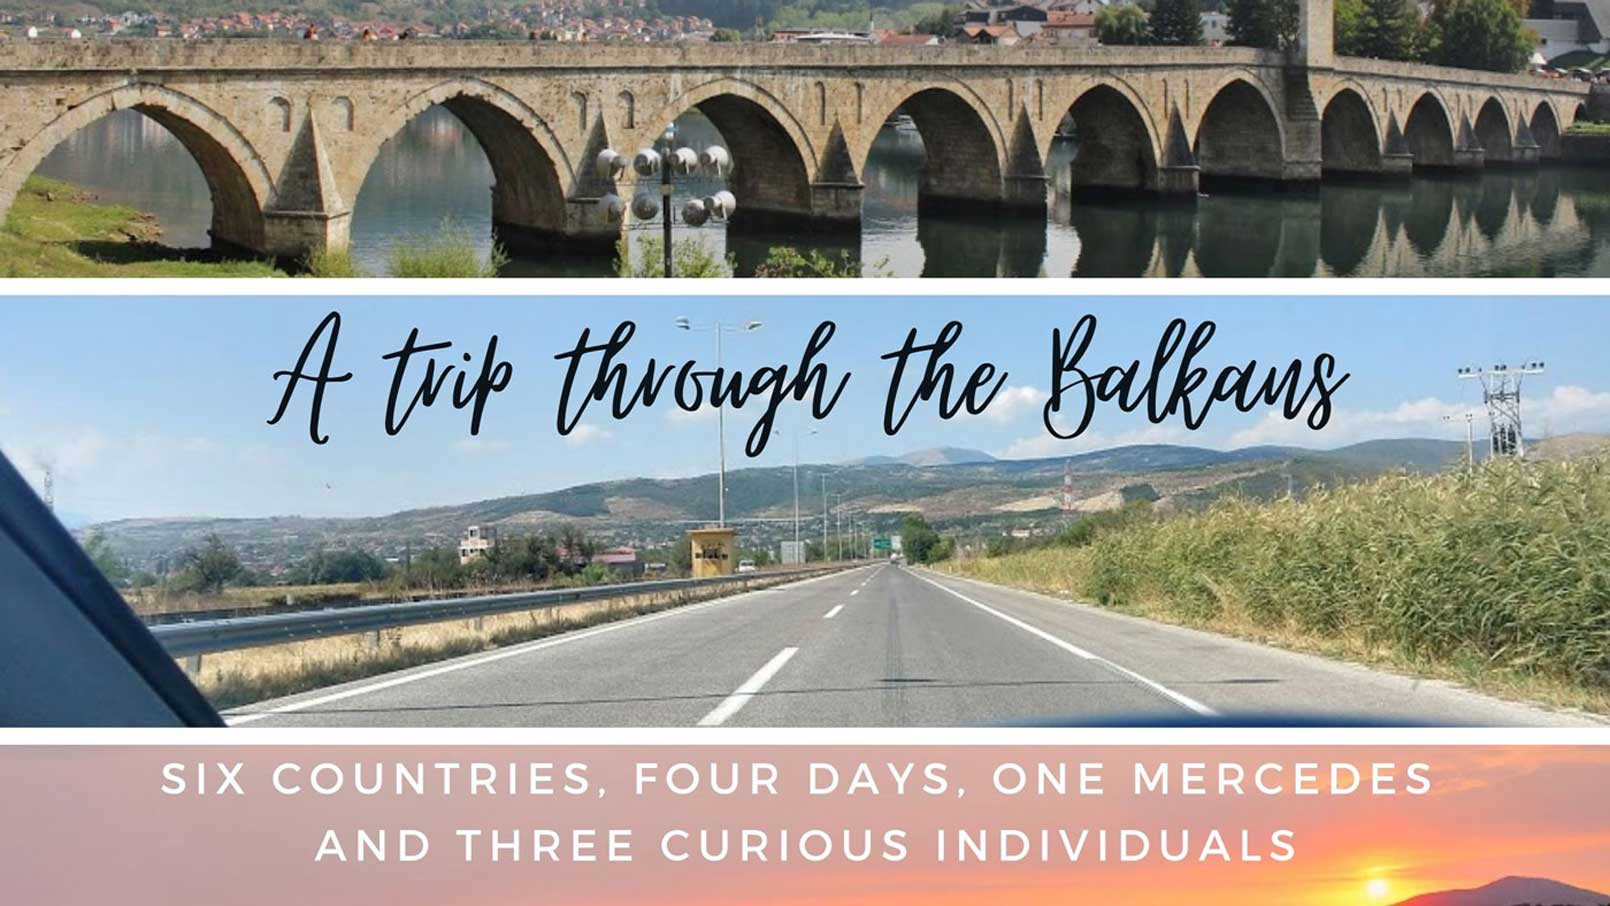 A trip through the Balkans – too many countries, not enough time